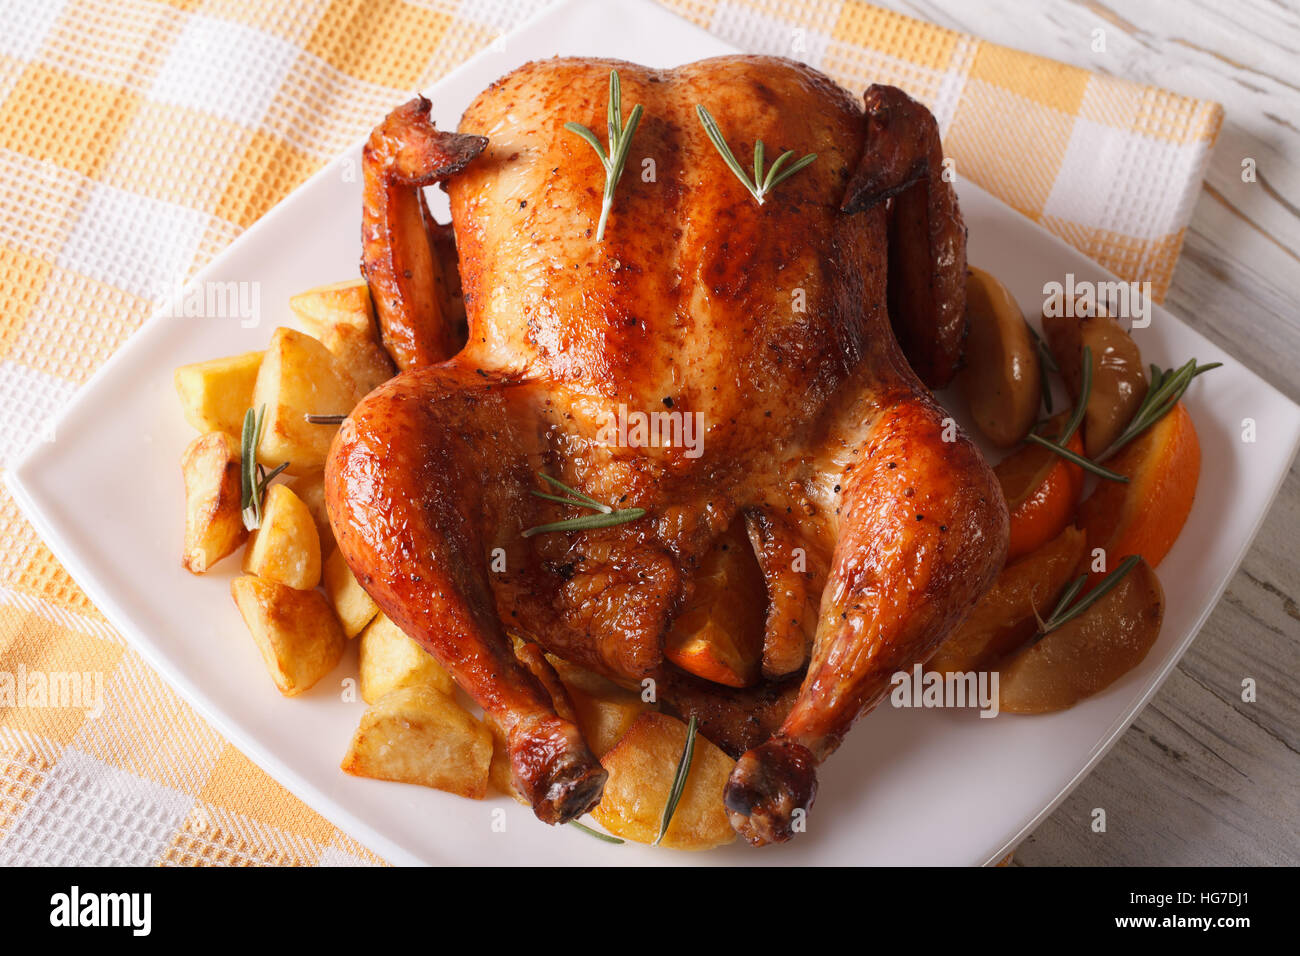 whole roast chicken with oranges, potatoes and apples close-up on a plate. horizontal - Stock Image